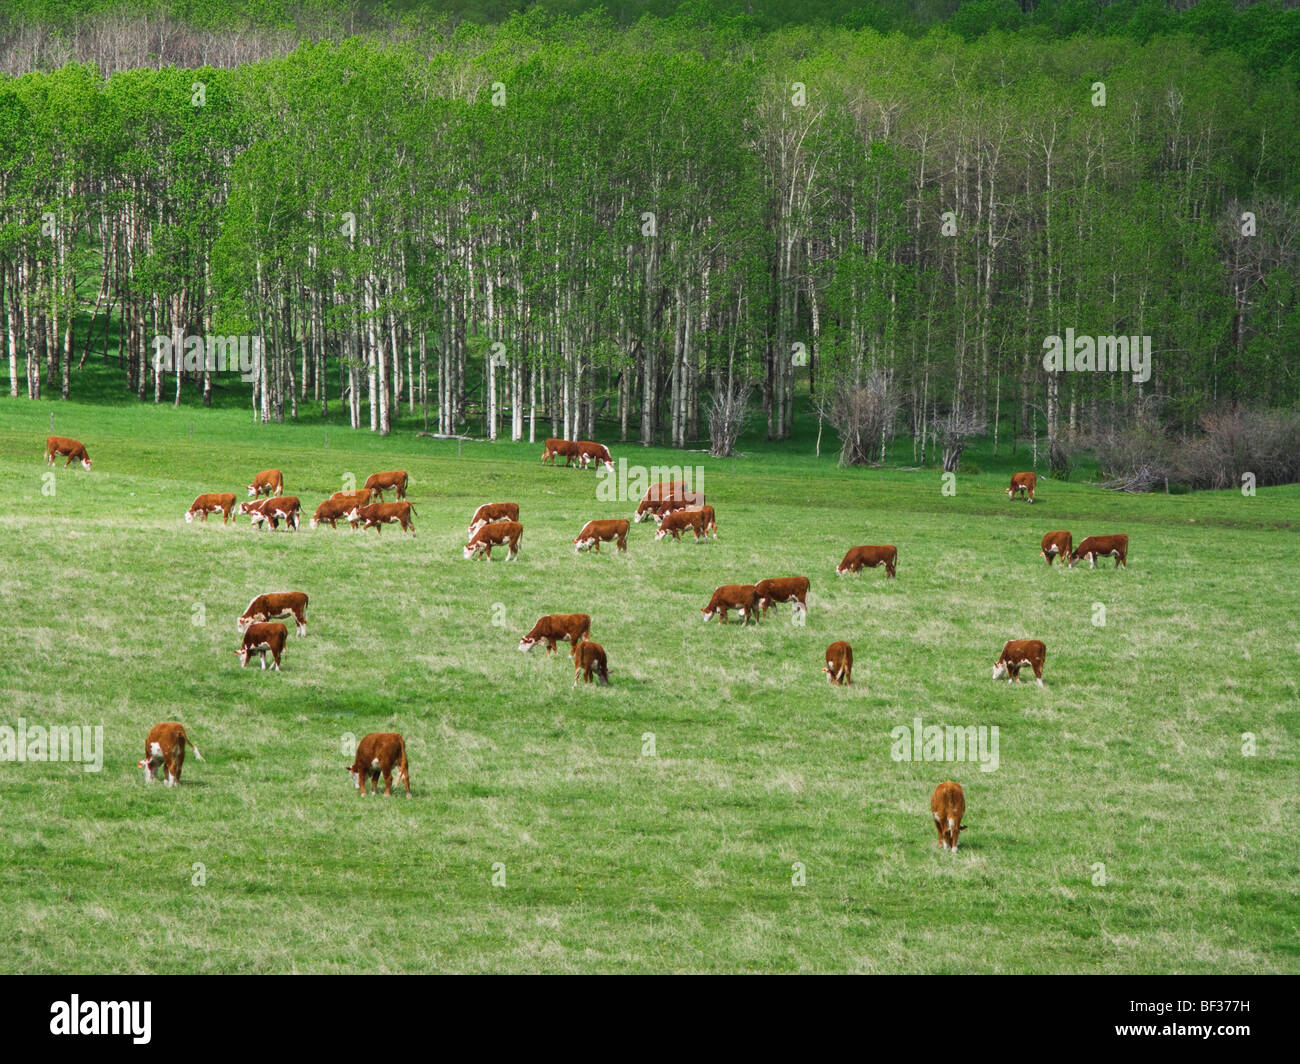 Livestock - Hereford cows grazing on an early summer foothill pasture / Alberta, Canada. - Stock Image